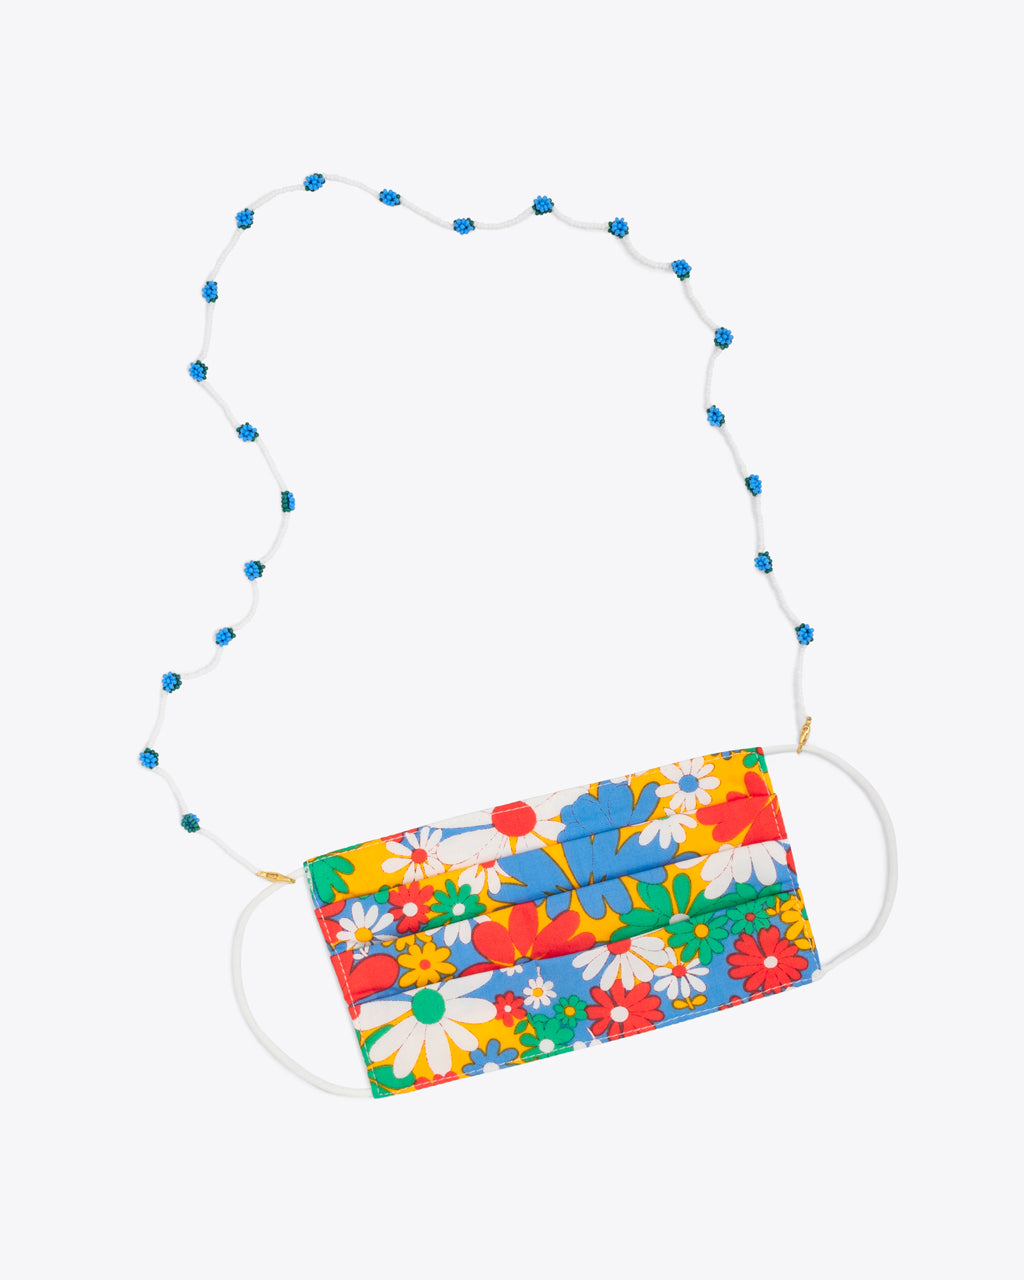 bluebell accessory chain shown on a floral face mask